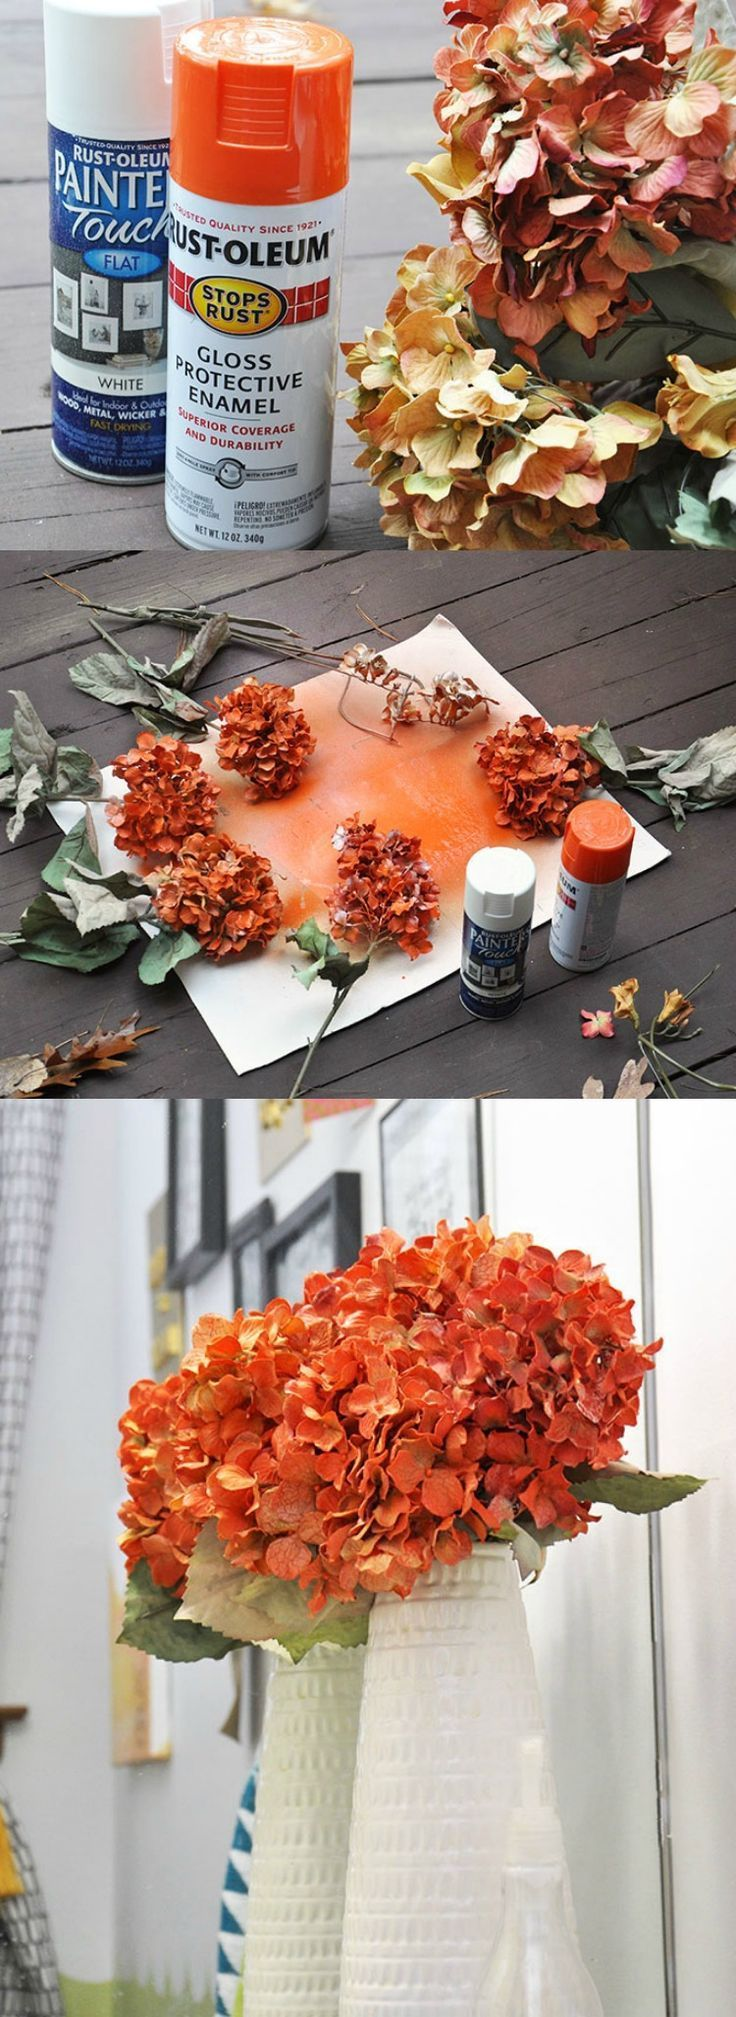 This is the easy way to DIY fake flowers with spray paint and make them be the color that you want. Reuse what you have and save money!